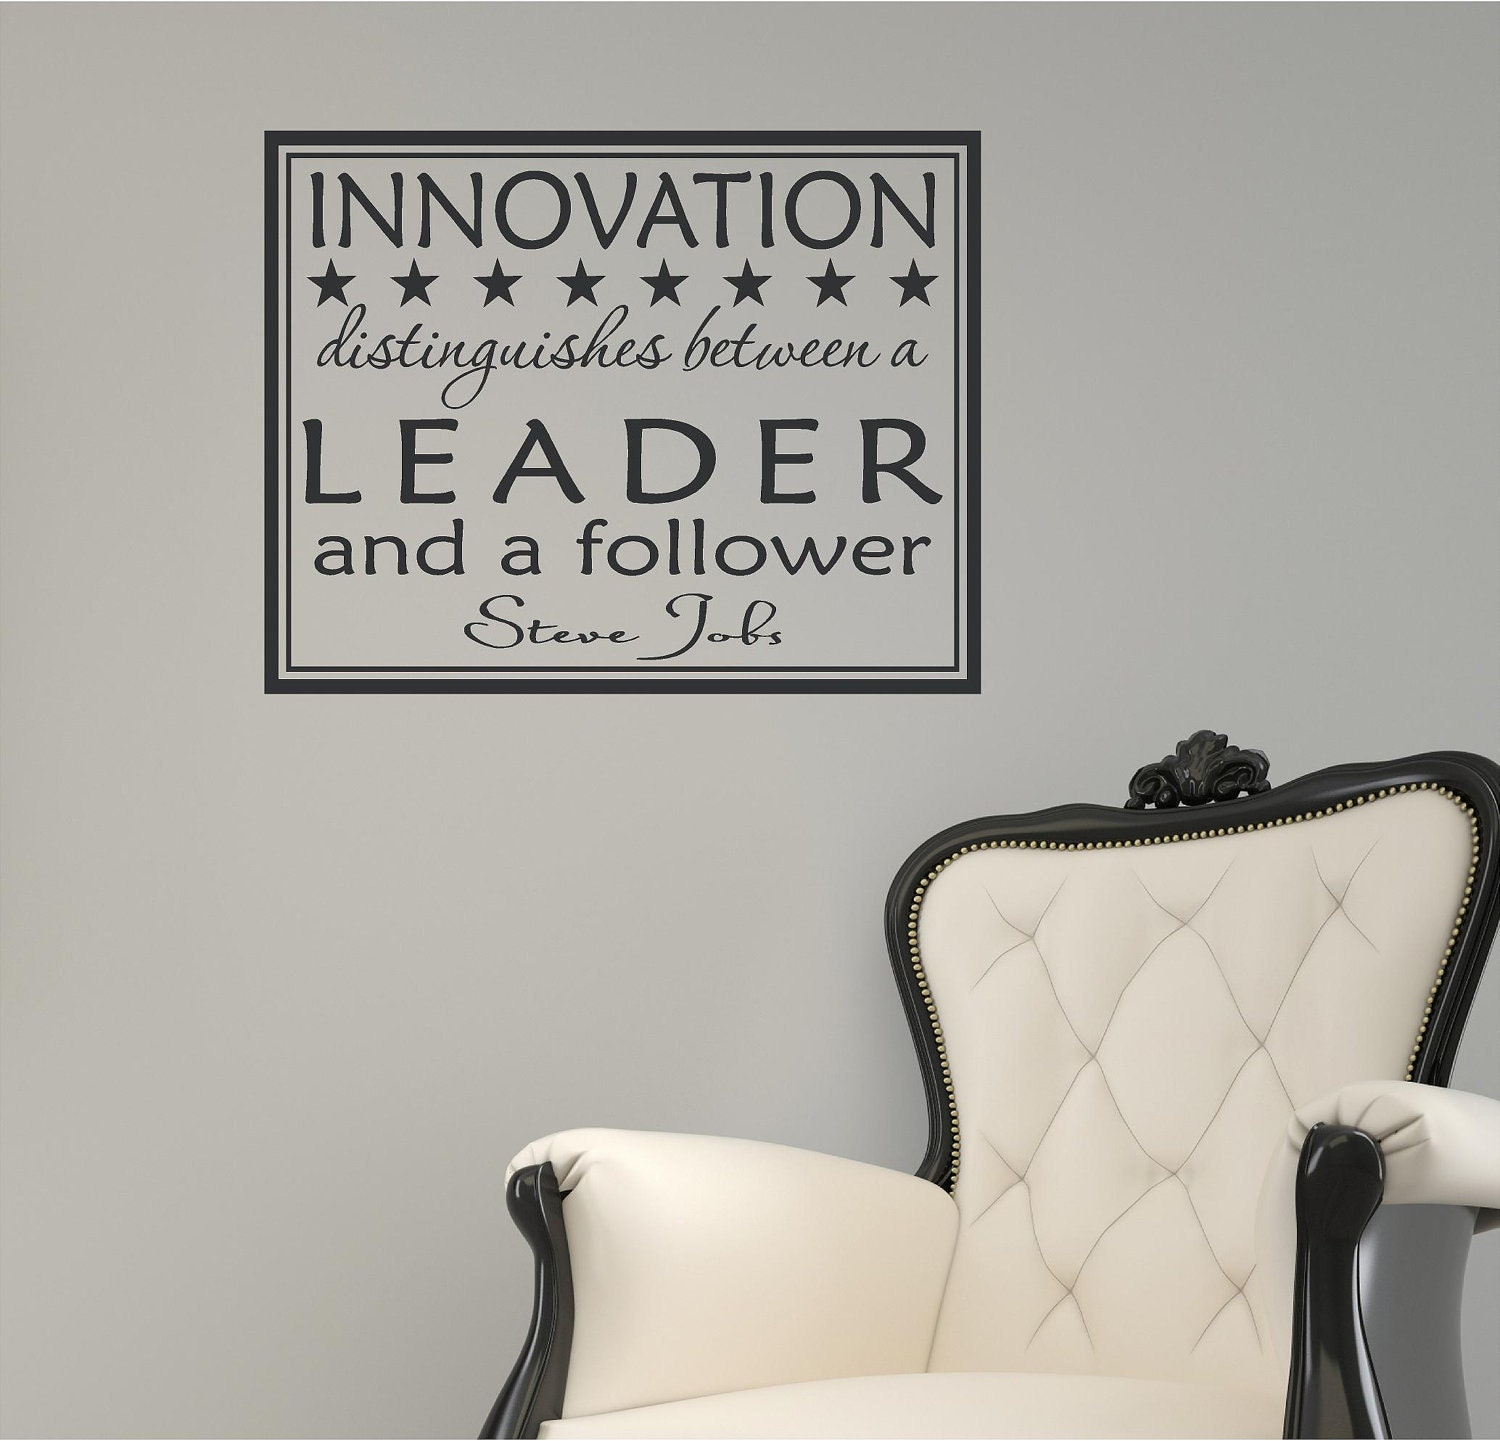 Quotes About Innovation Steve Jobs